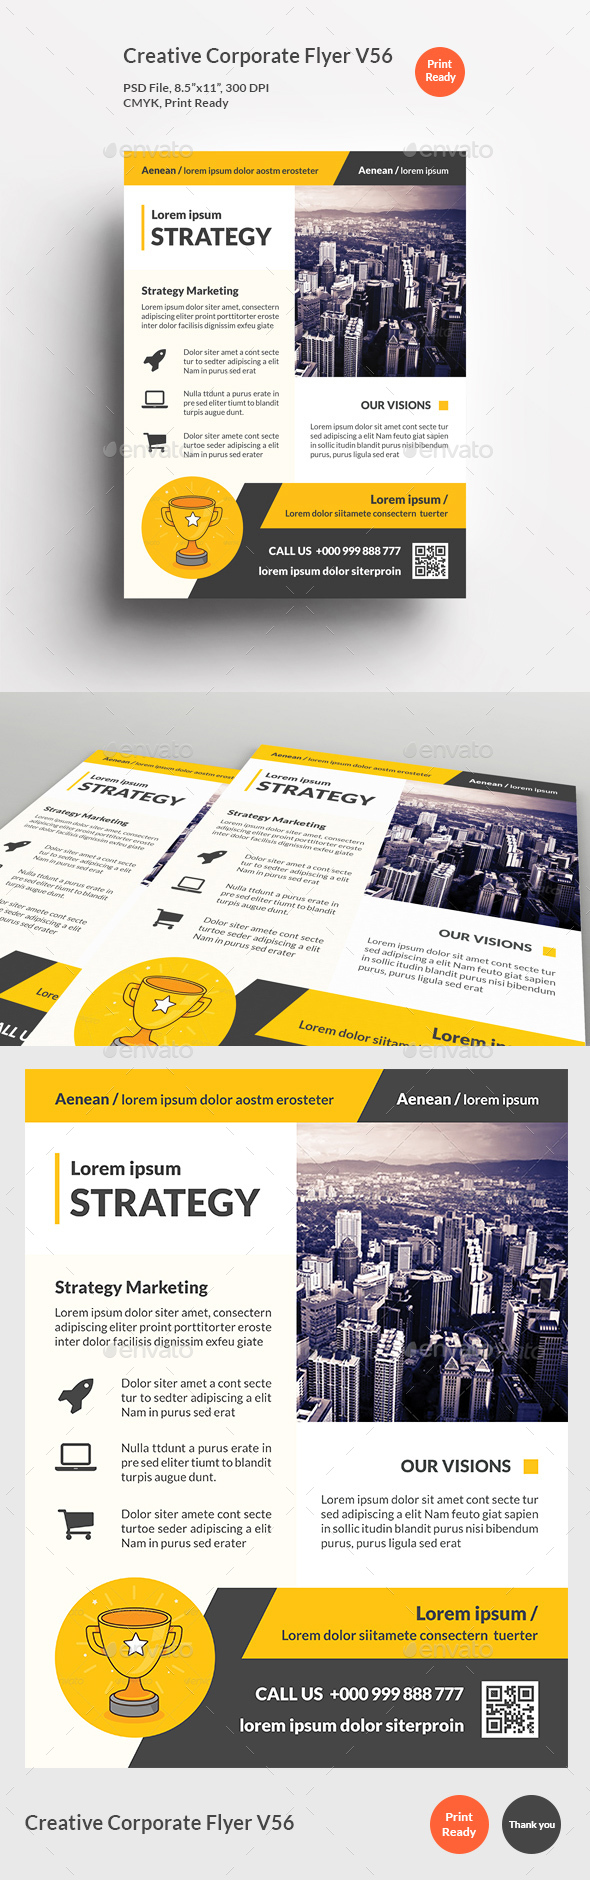 Creative Corporate Flyer V56 - Corporate Flyers